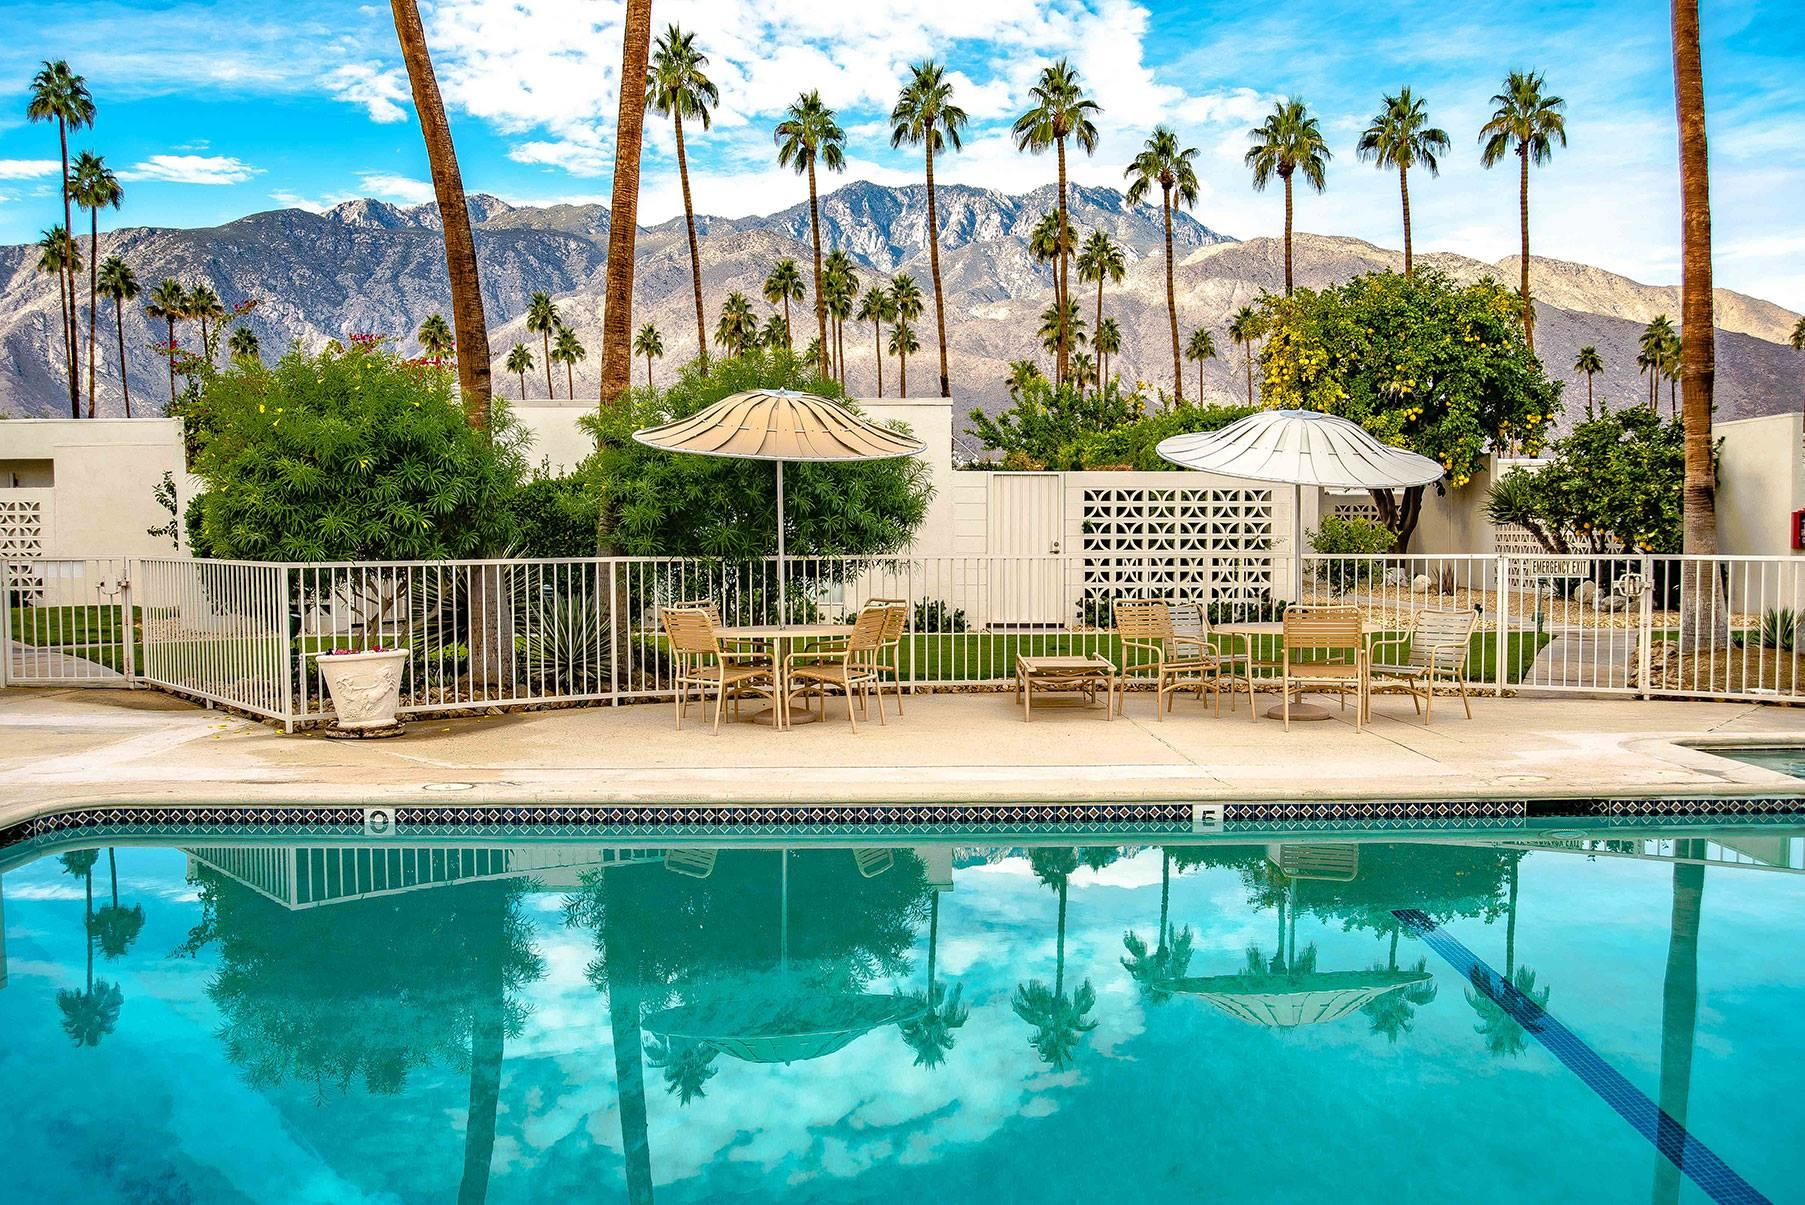 Palm springs homes condos in palm springs ca 92262 for Palm springs homes rentals